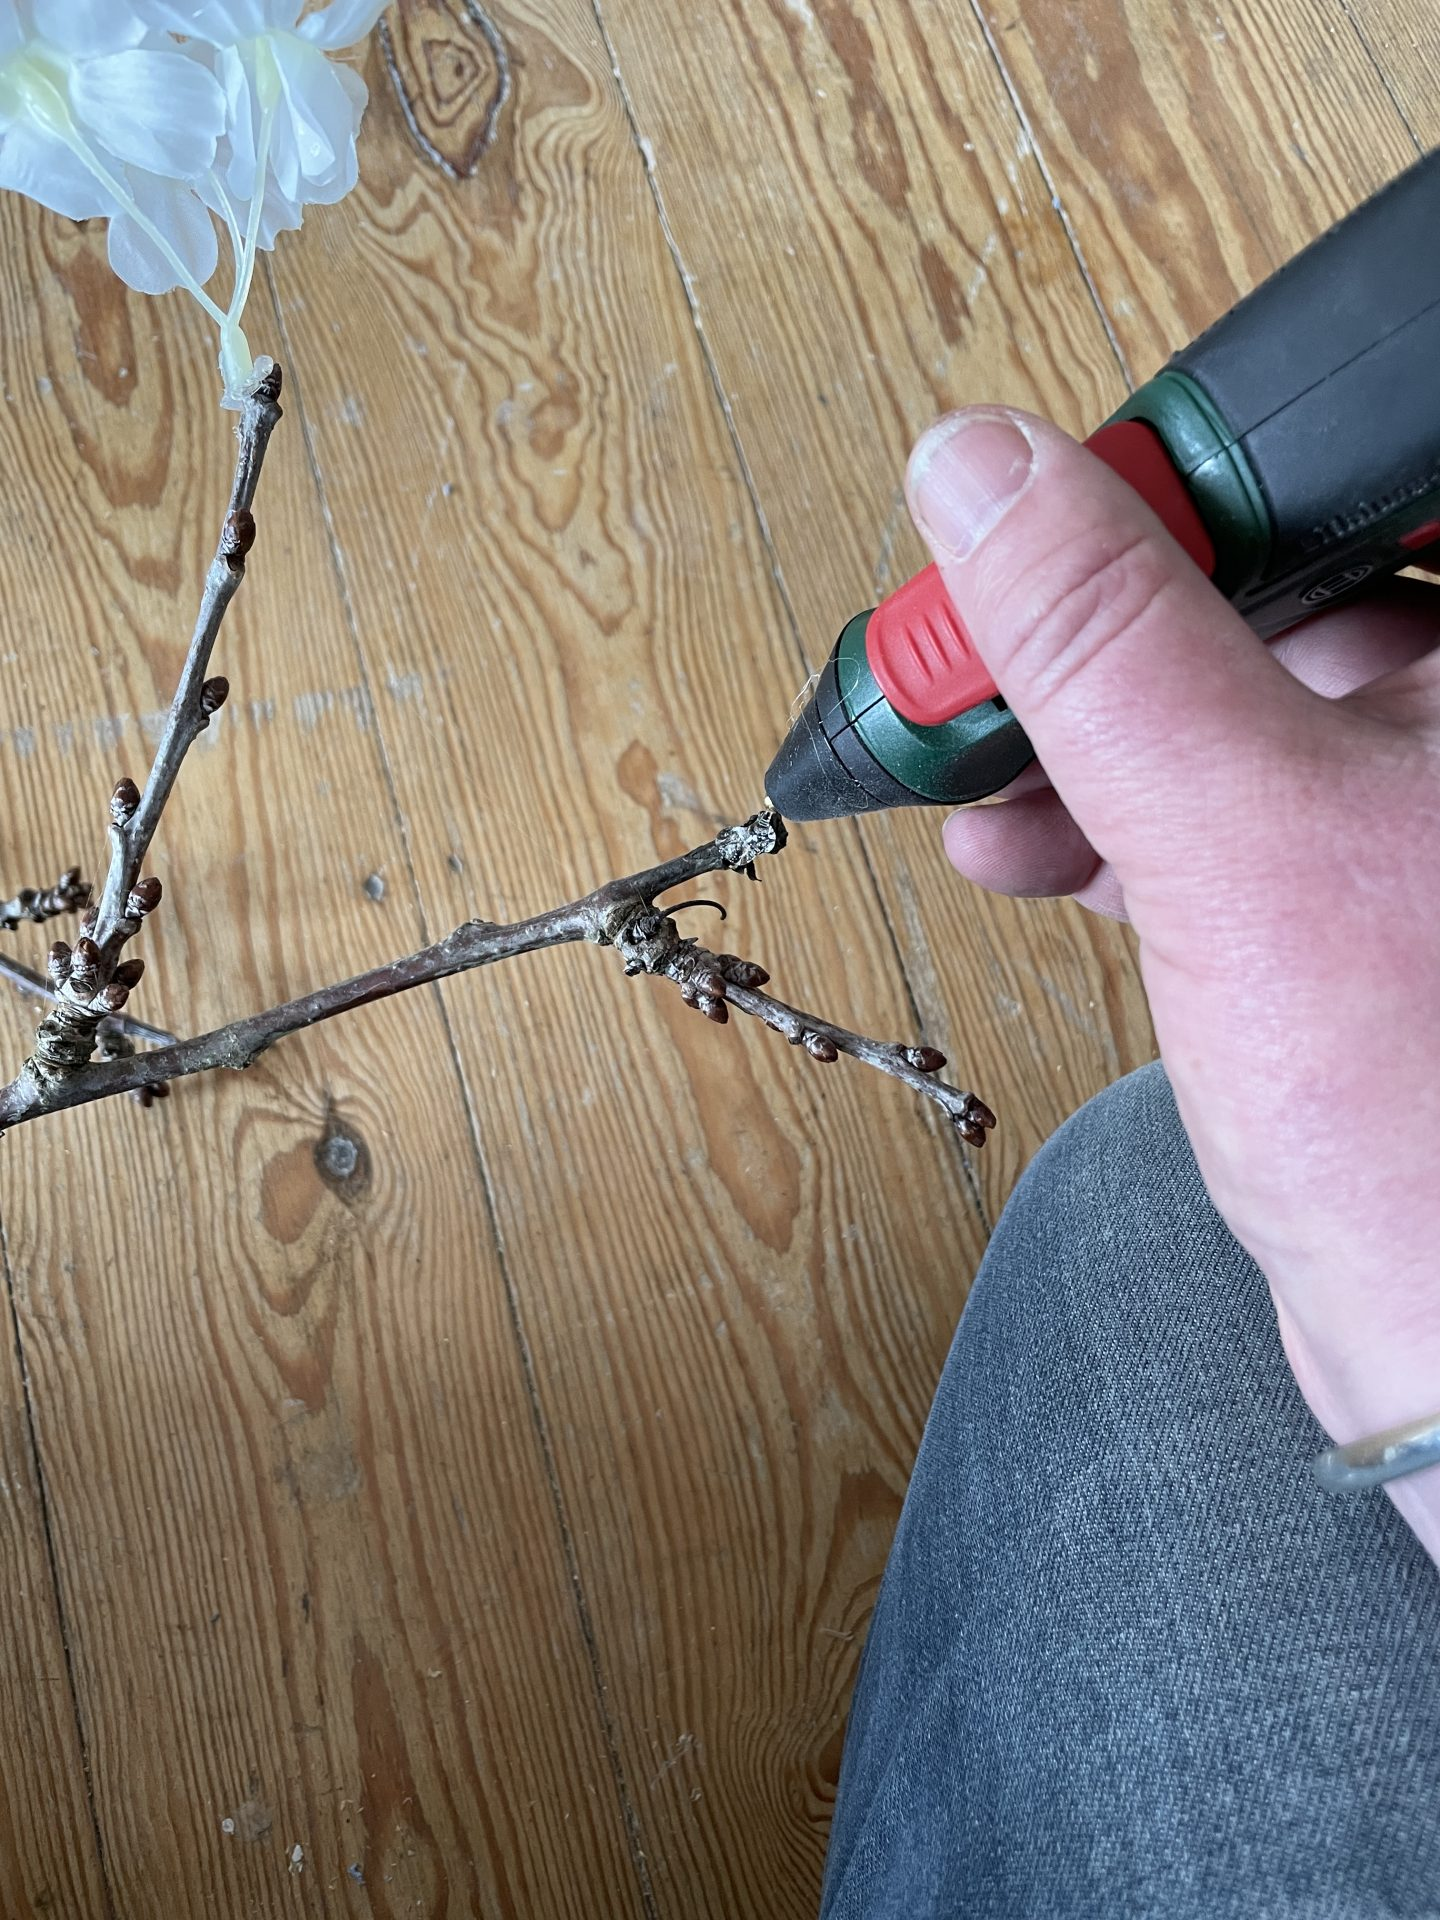 Glue gun - gluing faux cherry blossom onto a dead branch.